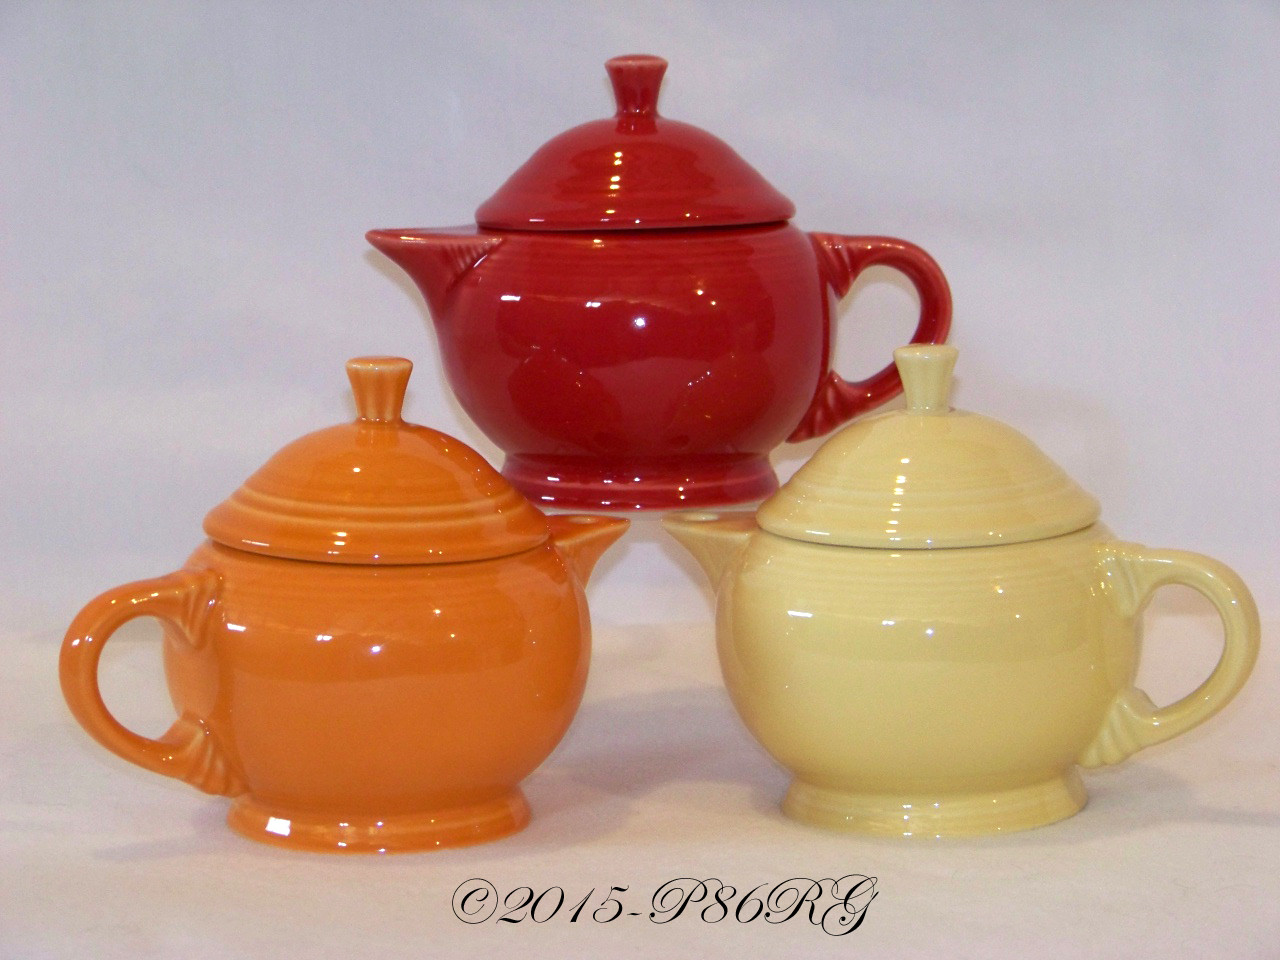 Fiestaware Millennium Vase Of Fiestaa Pitchers Teapots Carafes Inside Click Here to